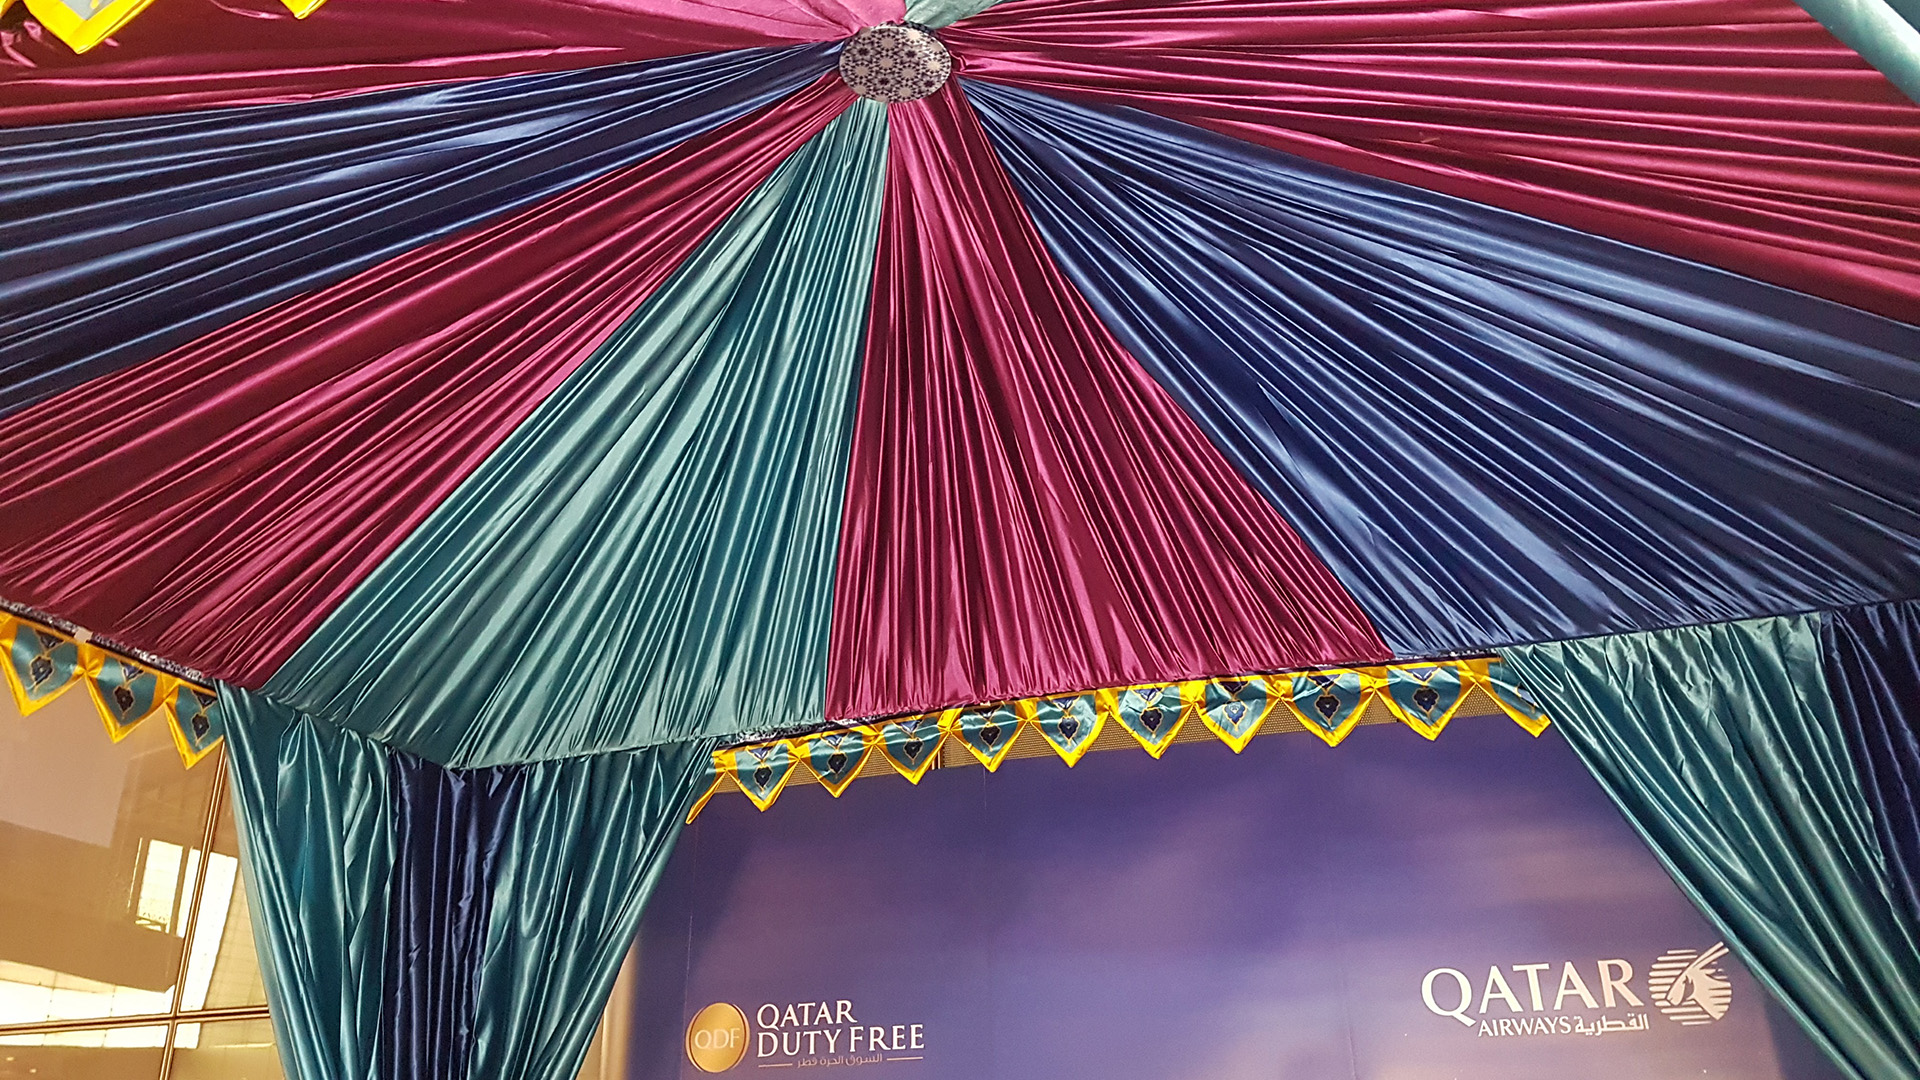 Qatar Airways Marrakech Launch Tent at Hamad International Airport made by ME VIsual